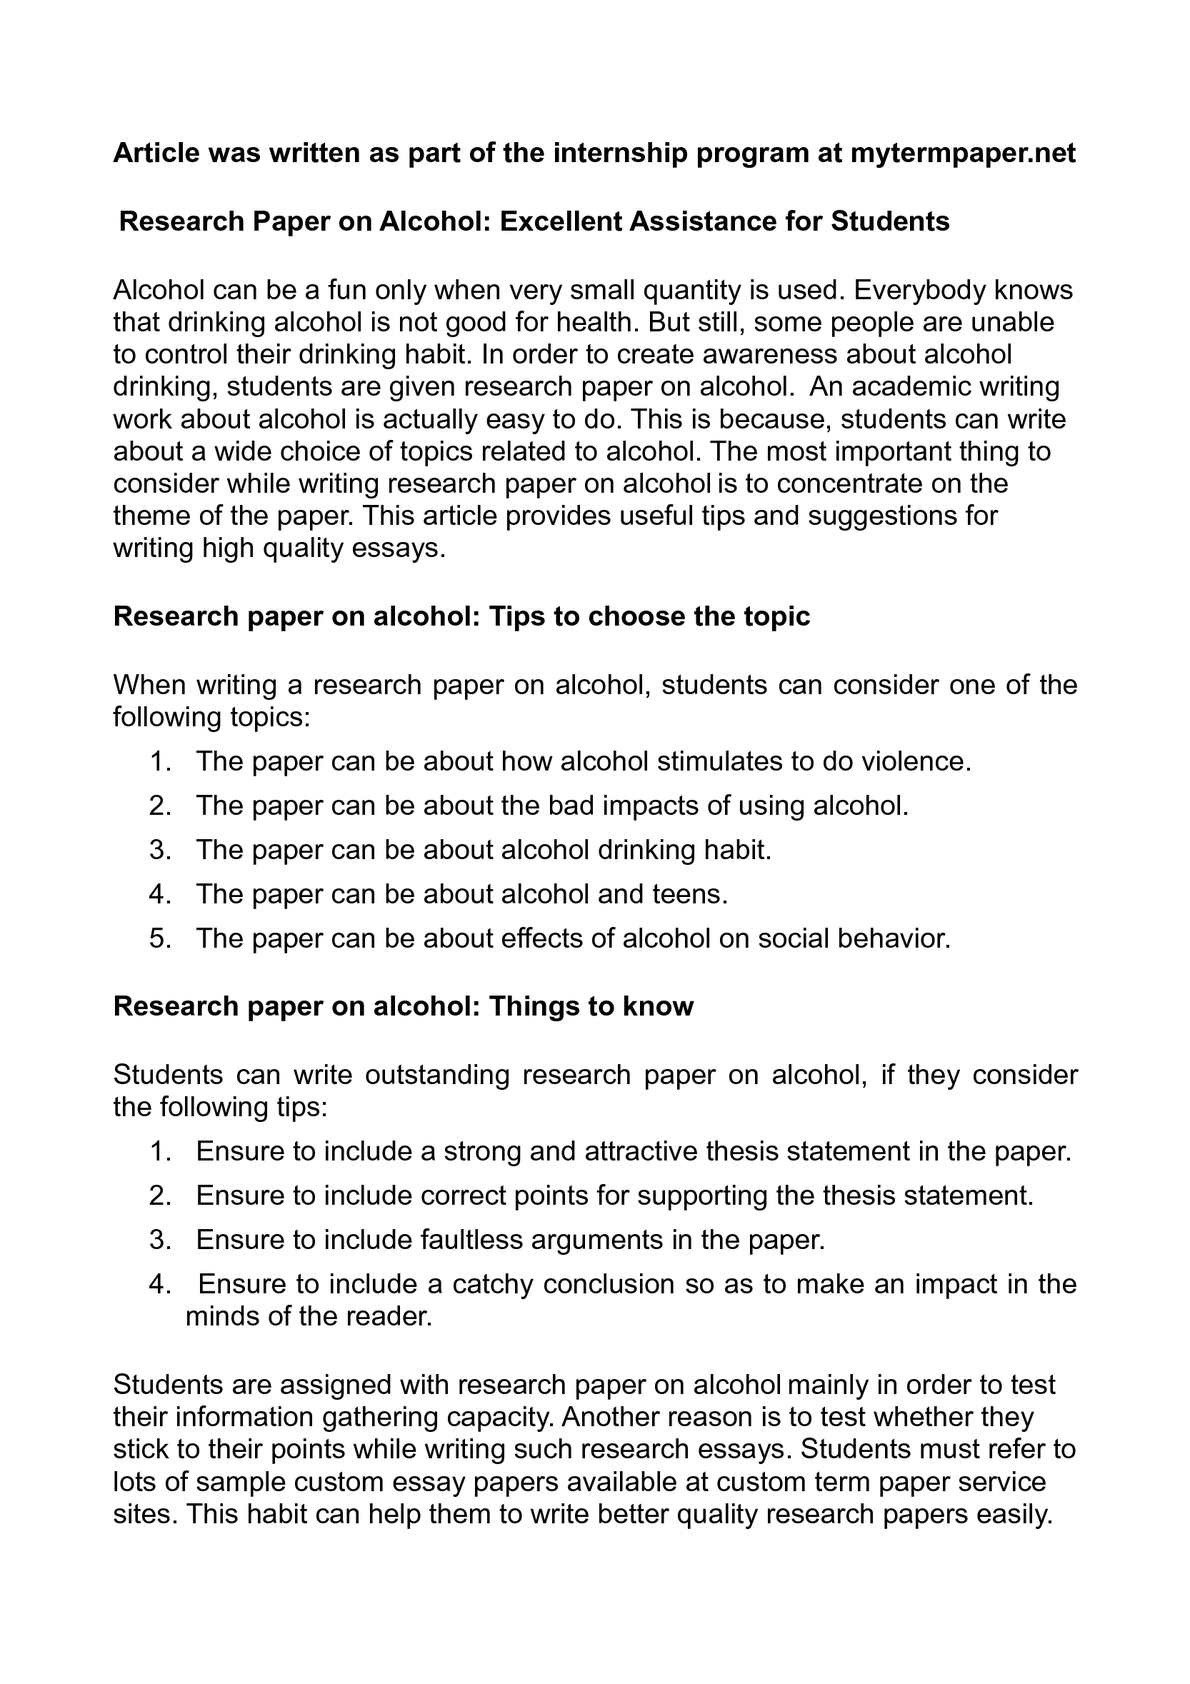 001 Research Paper On Alcohol Awesome Articles Substance Abuse Alcoholic Parents Use Disorder Full